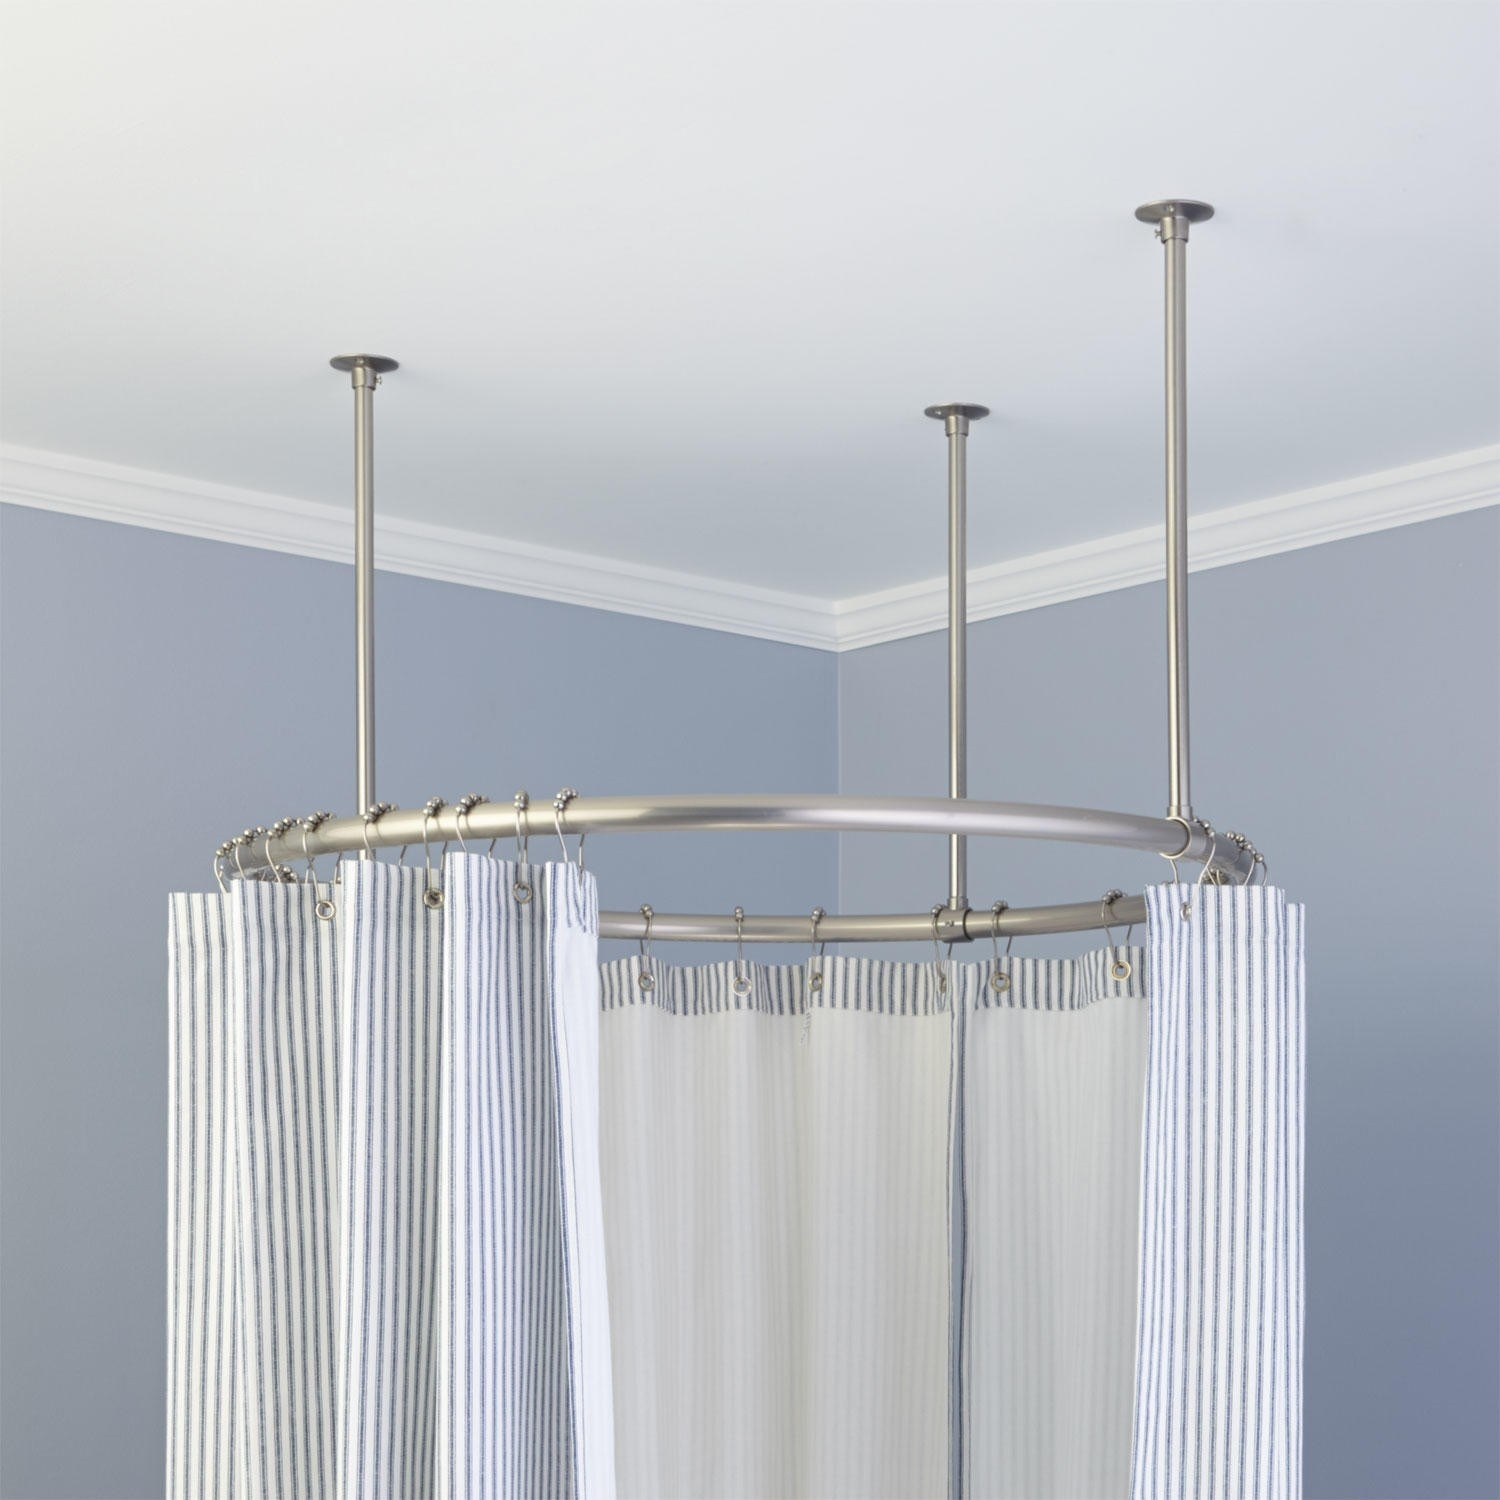 Shower Curtain Rods Signature Hardware Within L Shaped Shower Curtain Rods (View 22 of 25)